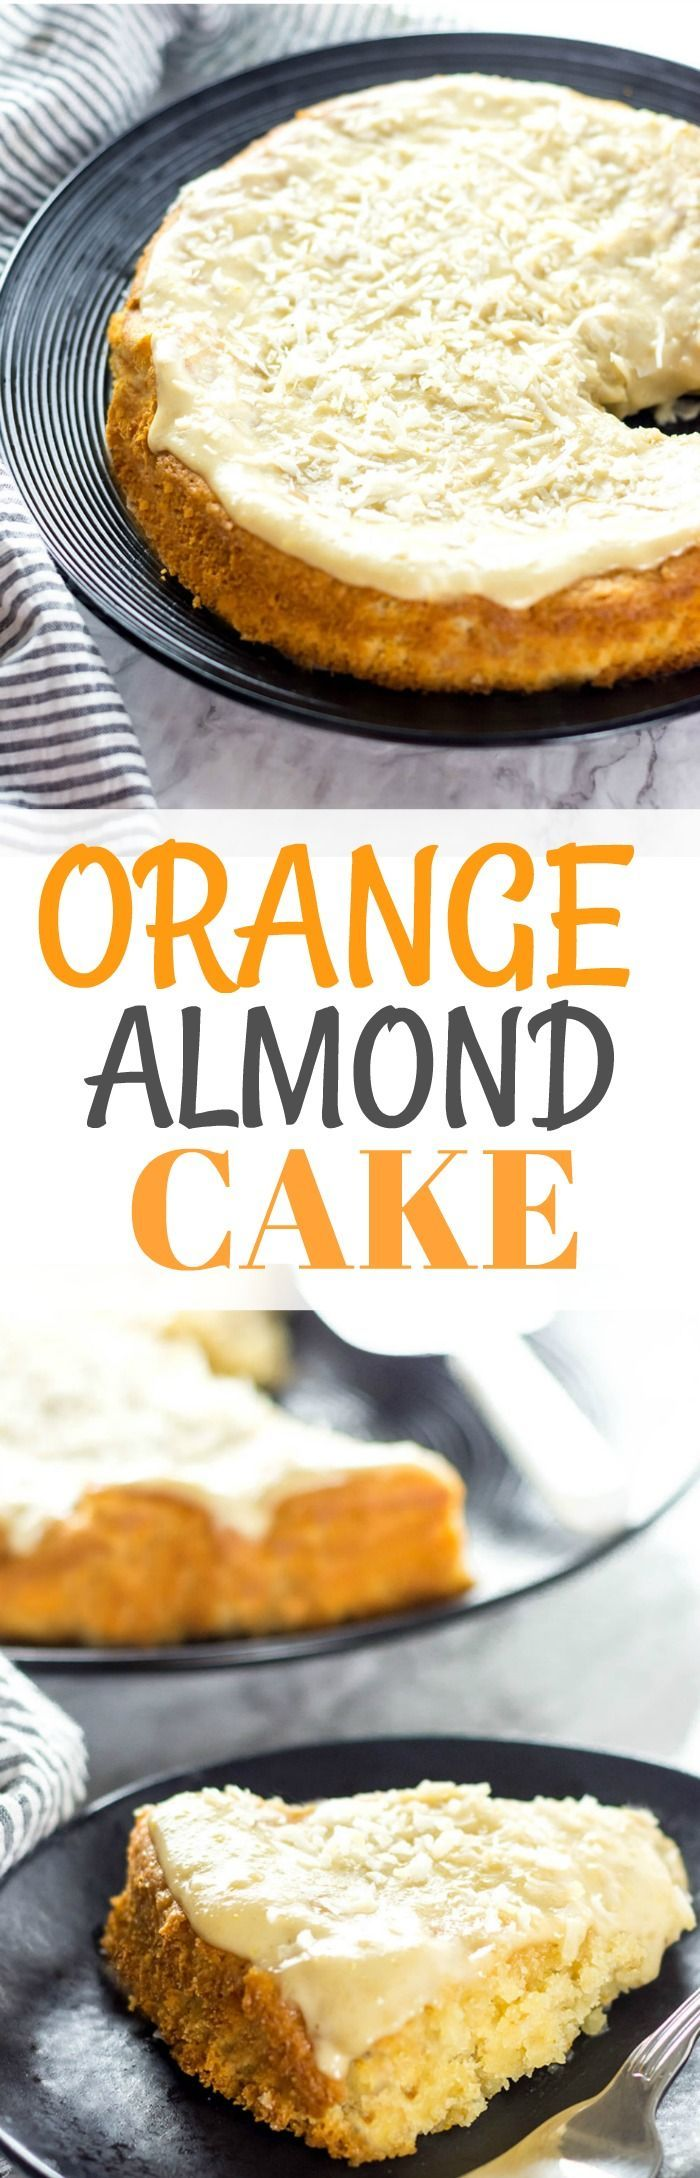 Orange Almond Cake (Vegan, Gluten-free) #vegan #glutenfreerecipes #cake #healthiersteps